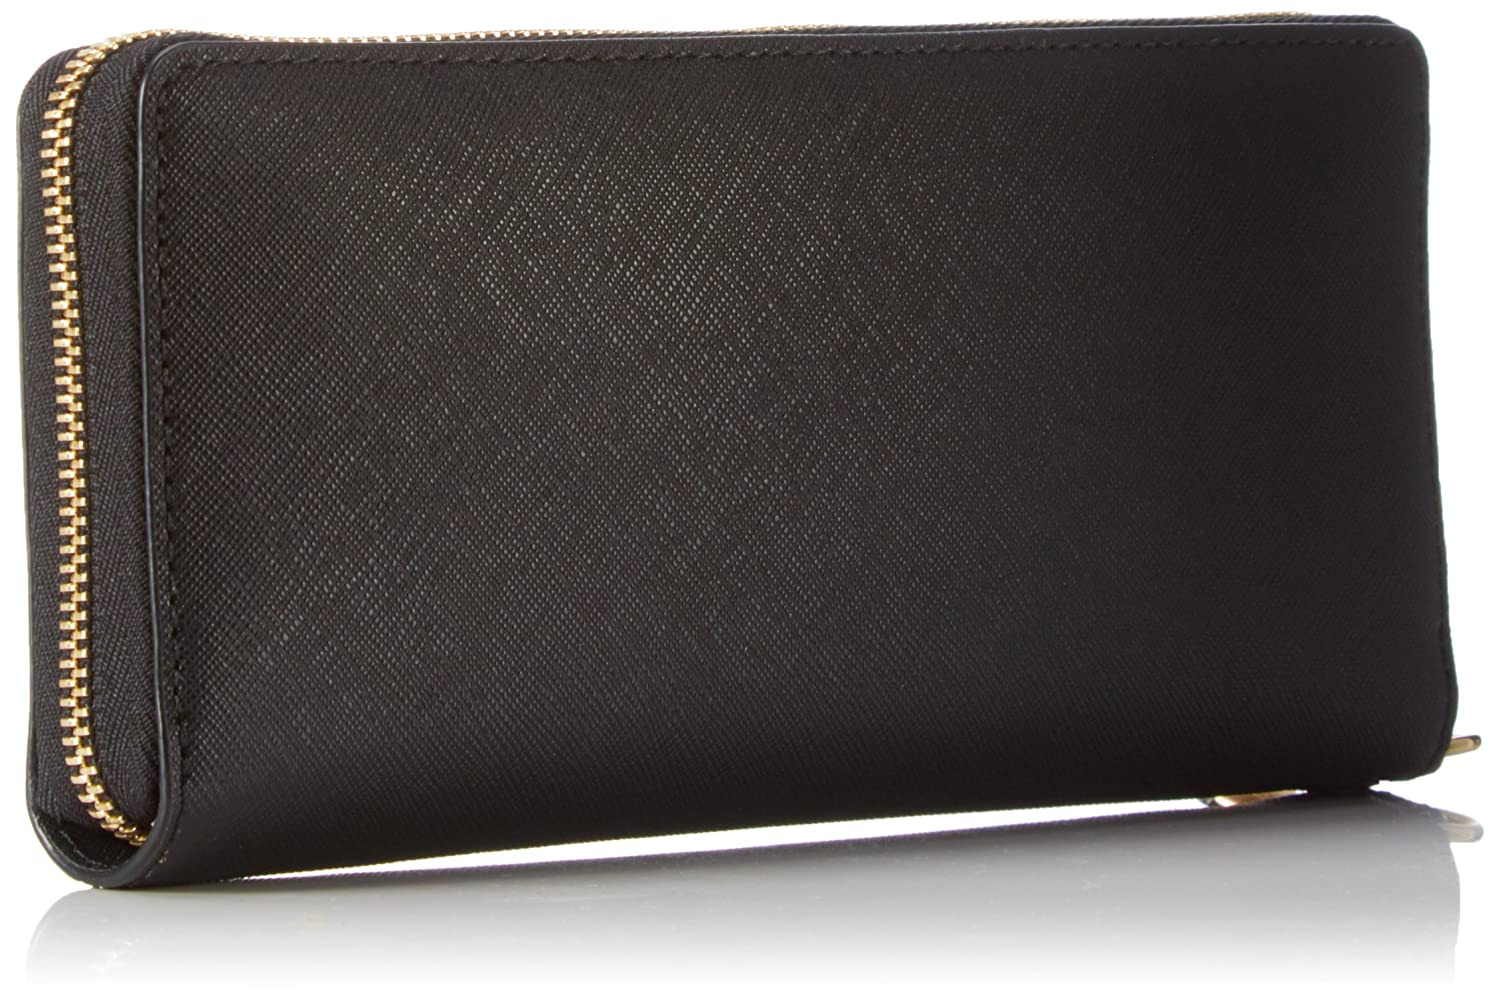 b84c4444312e Amazon.com: Michael Michael Kors Womens Jet Set Travel Continental Leather  Wallet: Michael Kors: Shoes